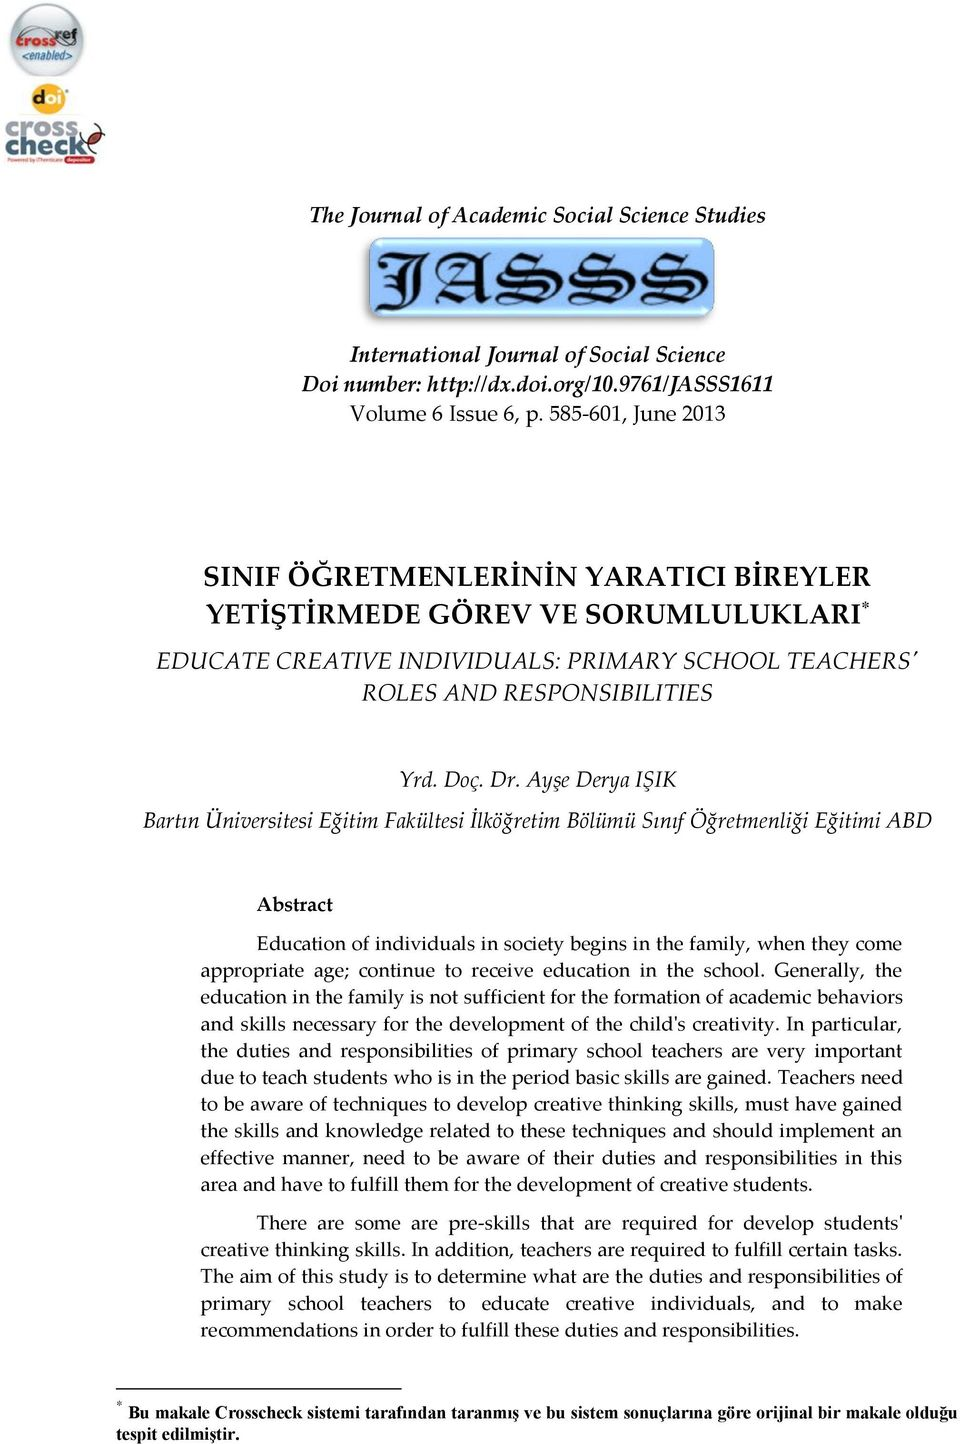 Ayşe Derya IŞIK Bartın Üniversitesi Eğitim Fakültesi İlköğretim Bölümü Sınıf Öğretmenliği Eğitimi ABD Abstract Education of individuals in society begins in the family, when they come appropriate